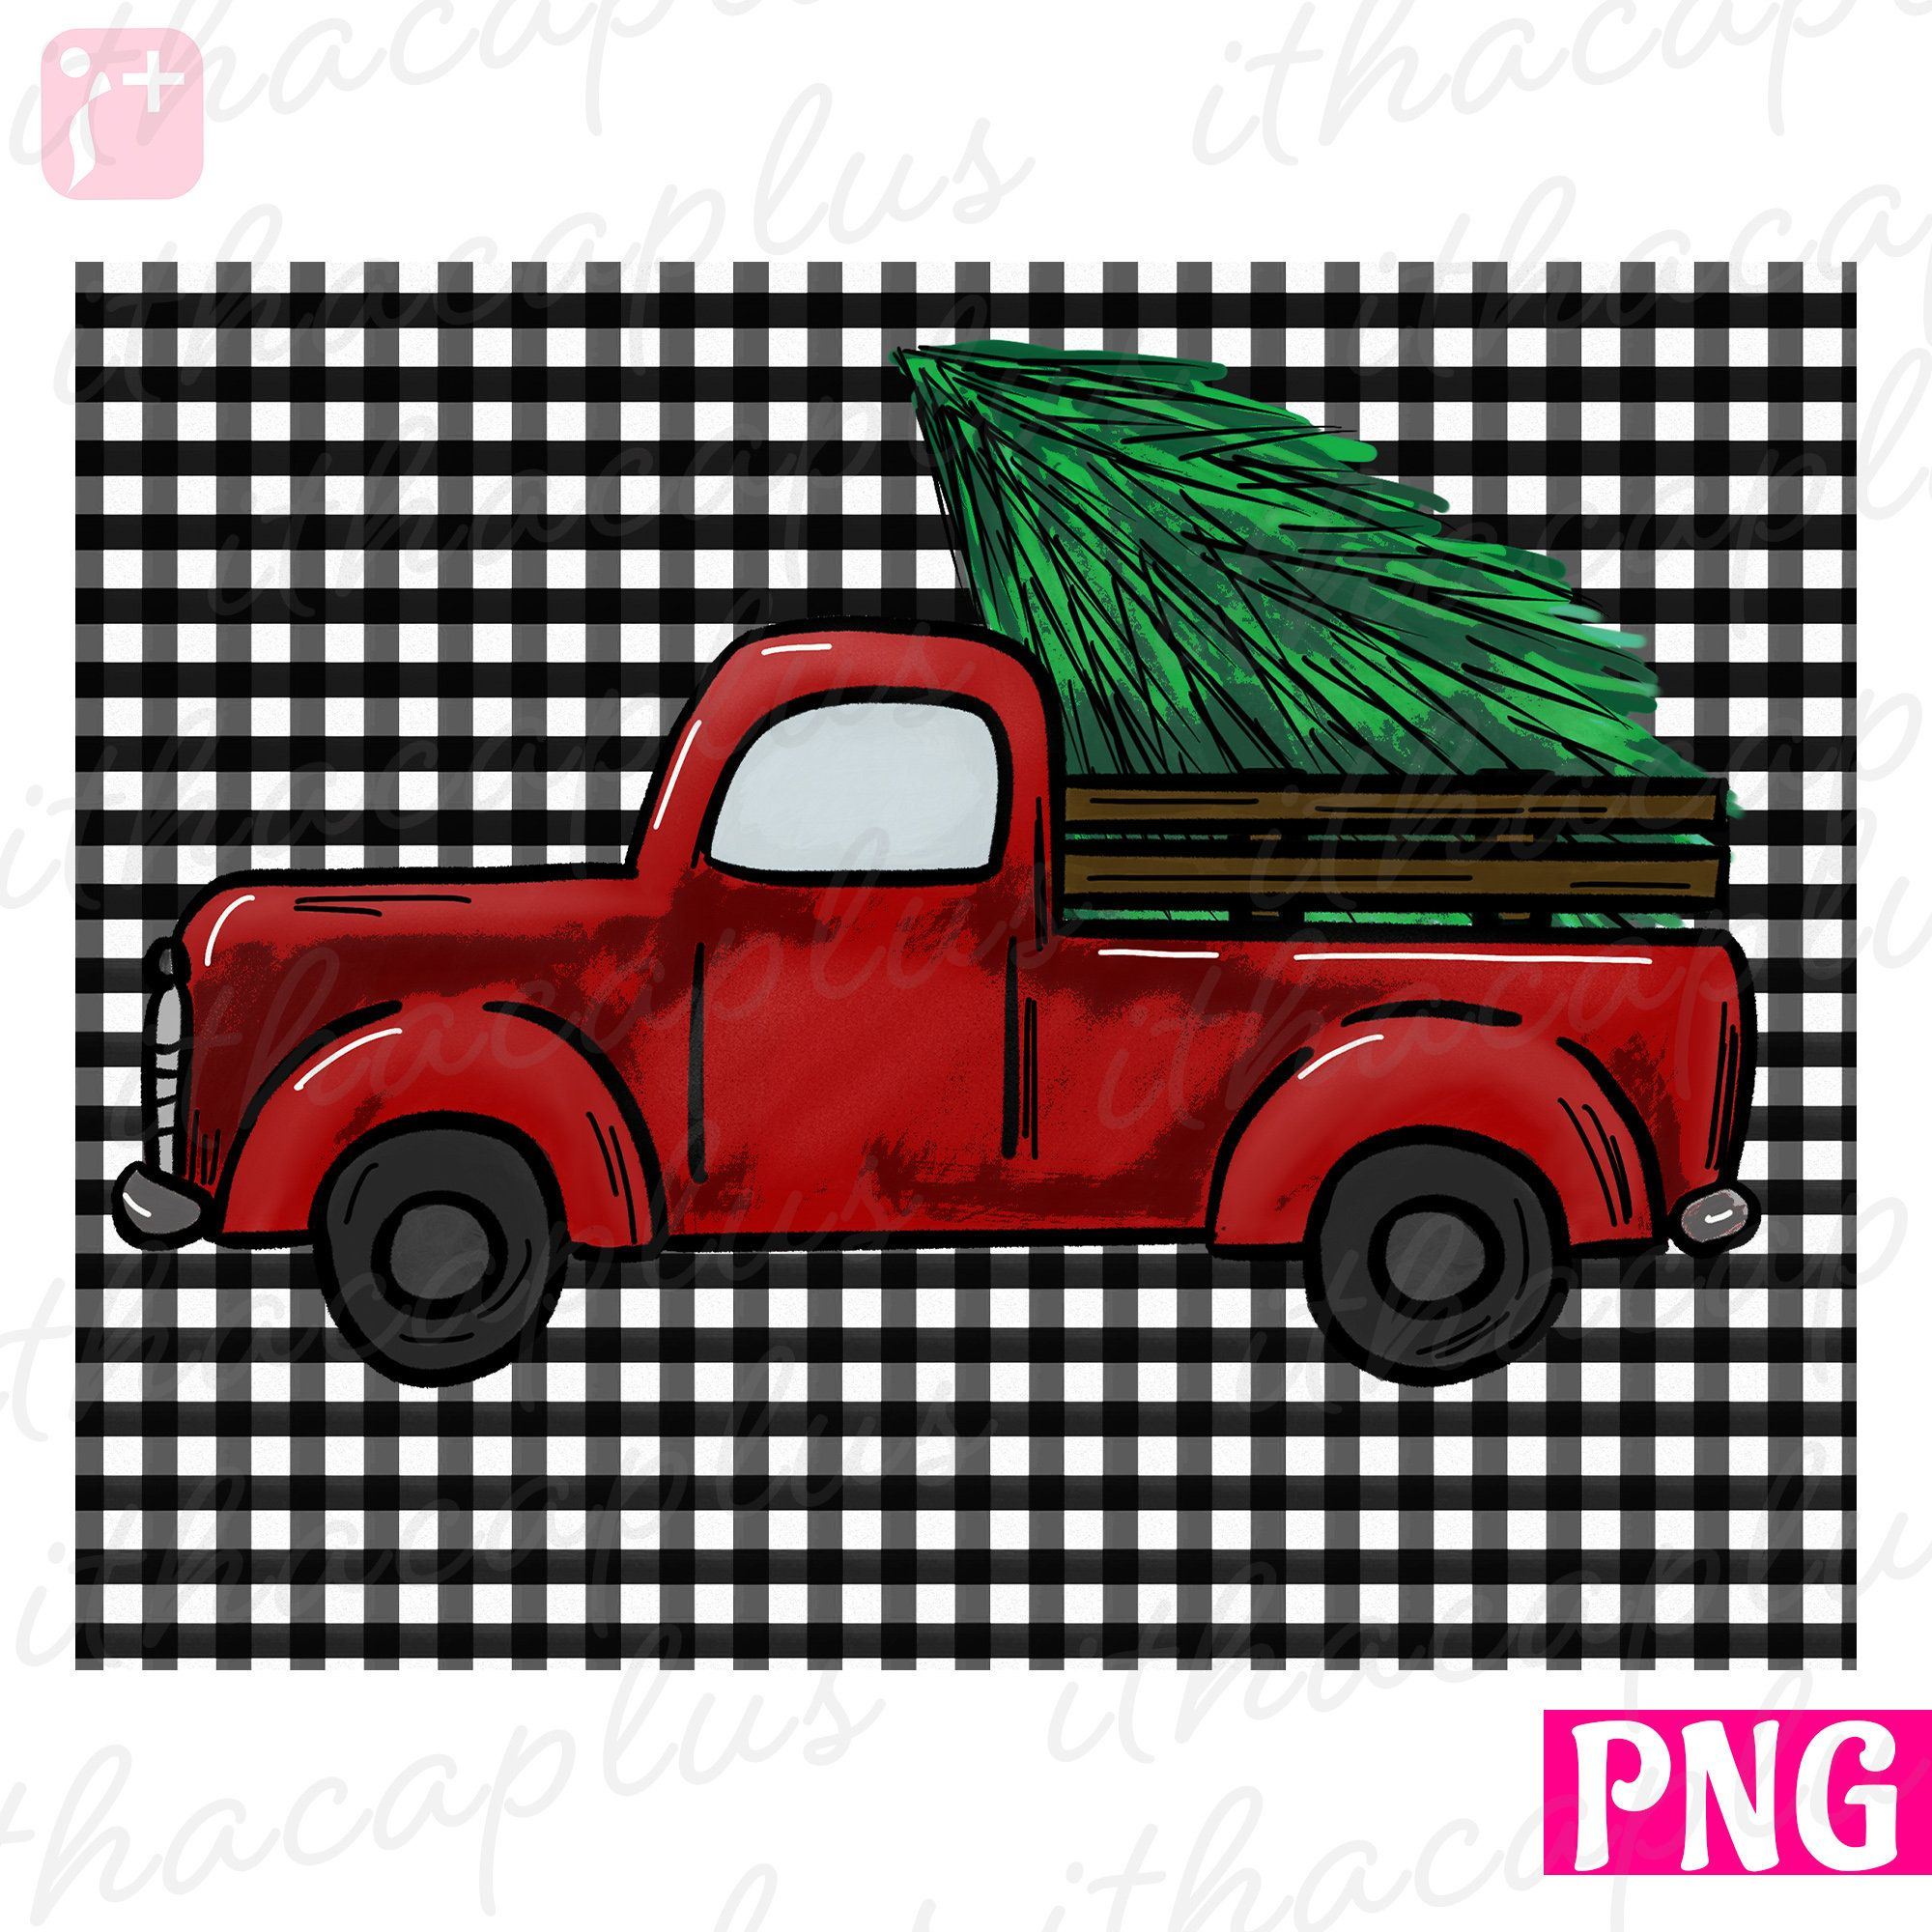 Christmas Red Truck Png Files Sublimation Christmas Truck Etsy Christmas Red Truck Christmas Truck Red Truck